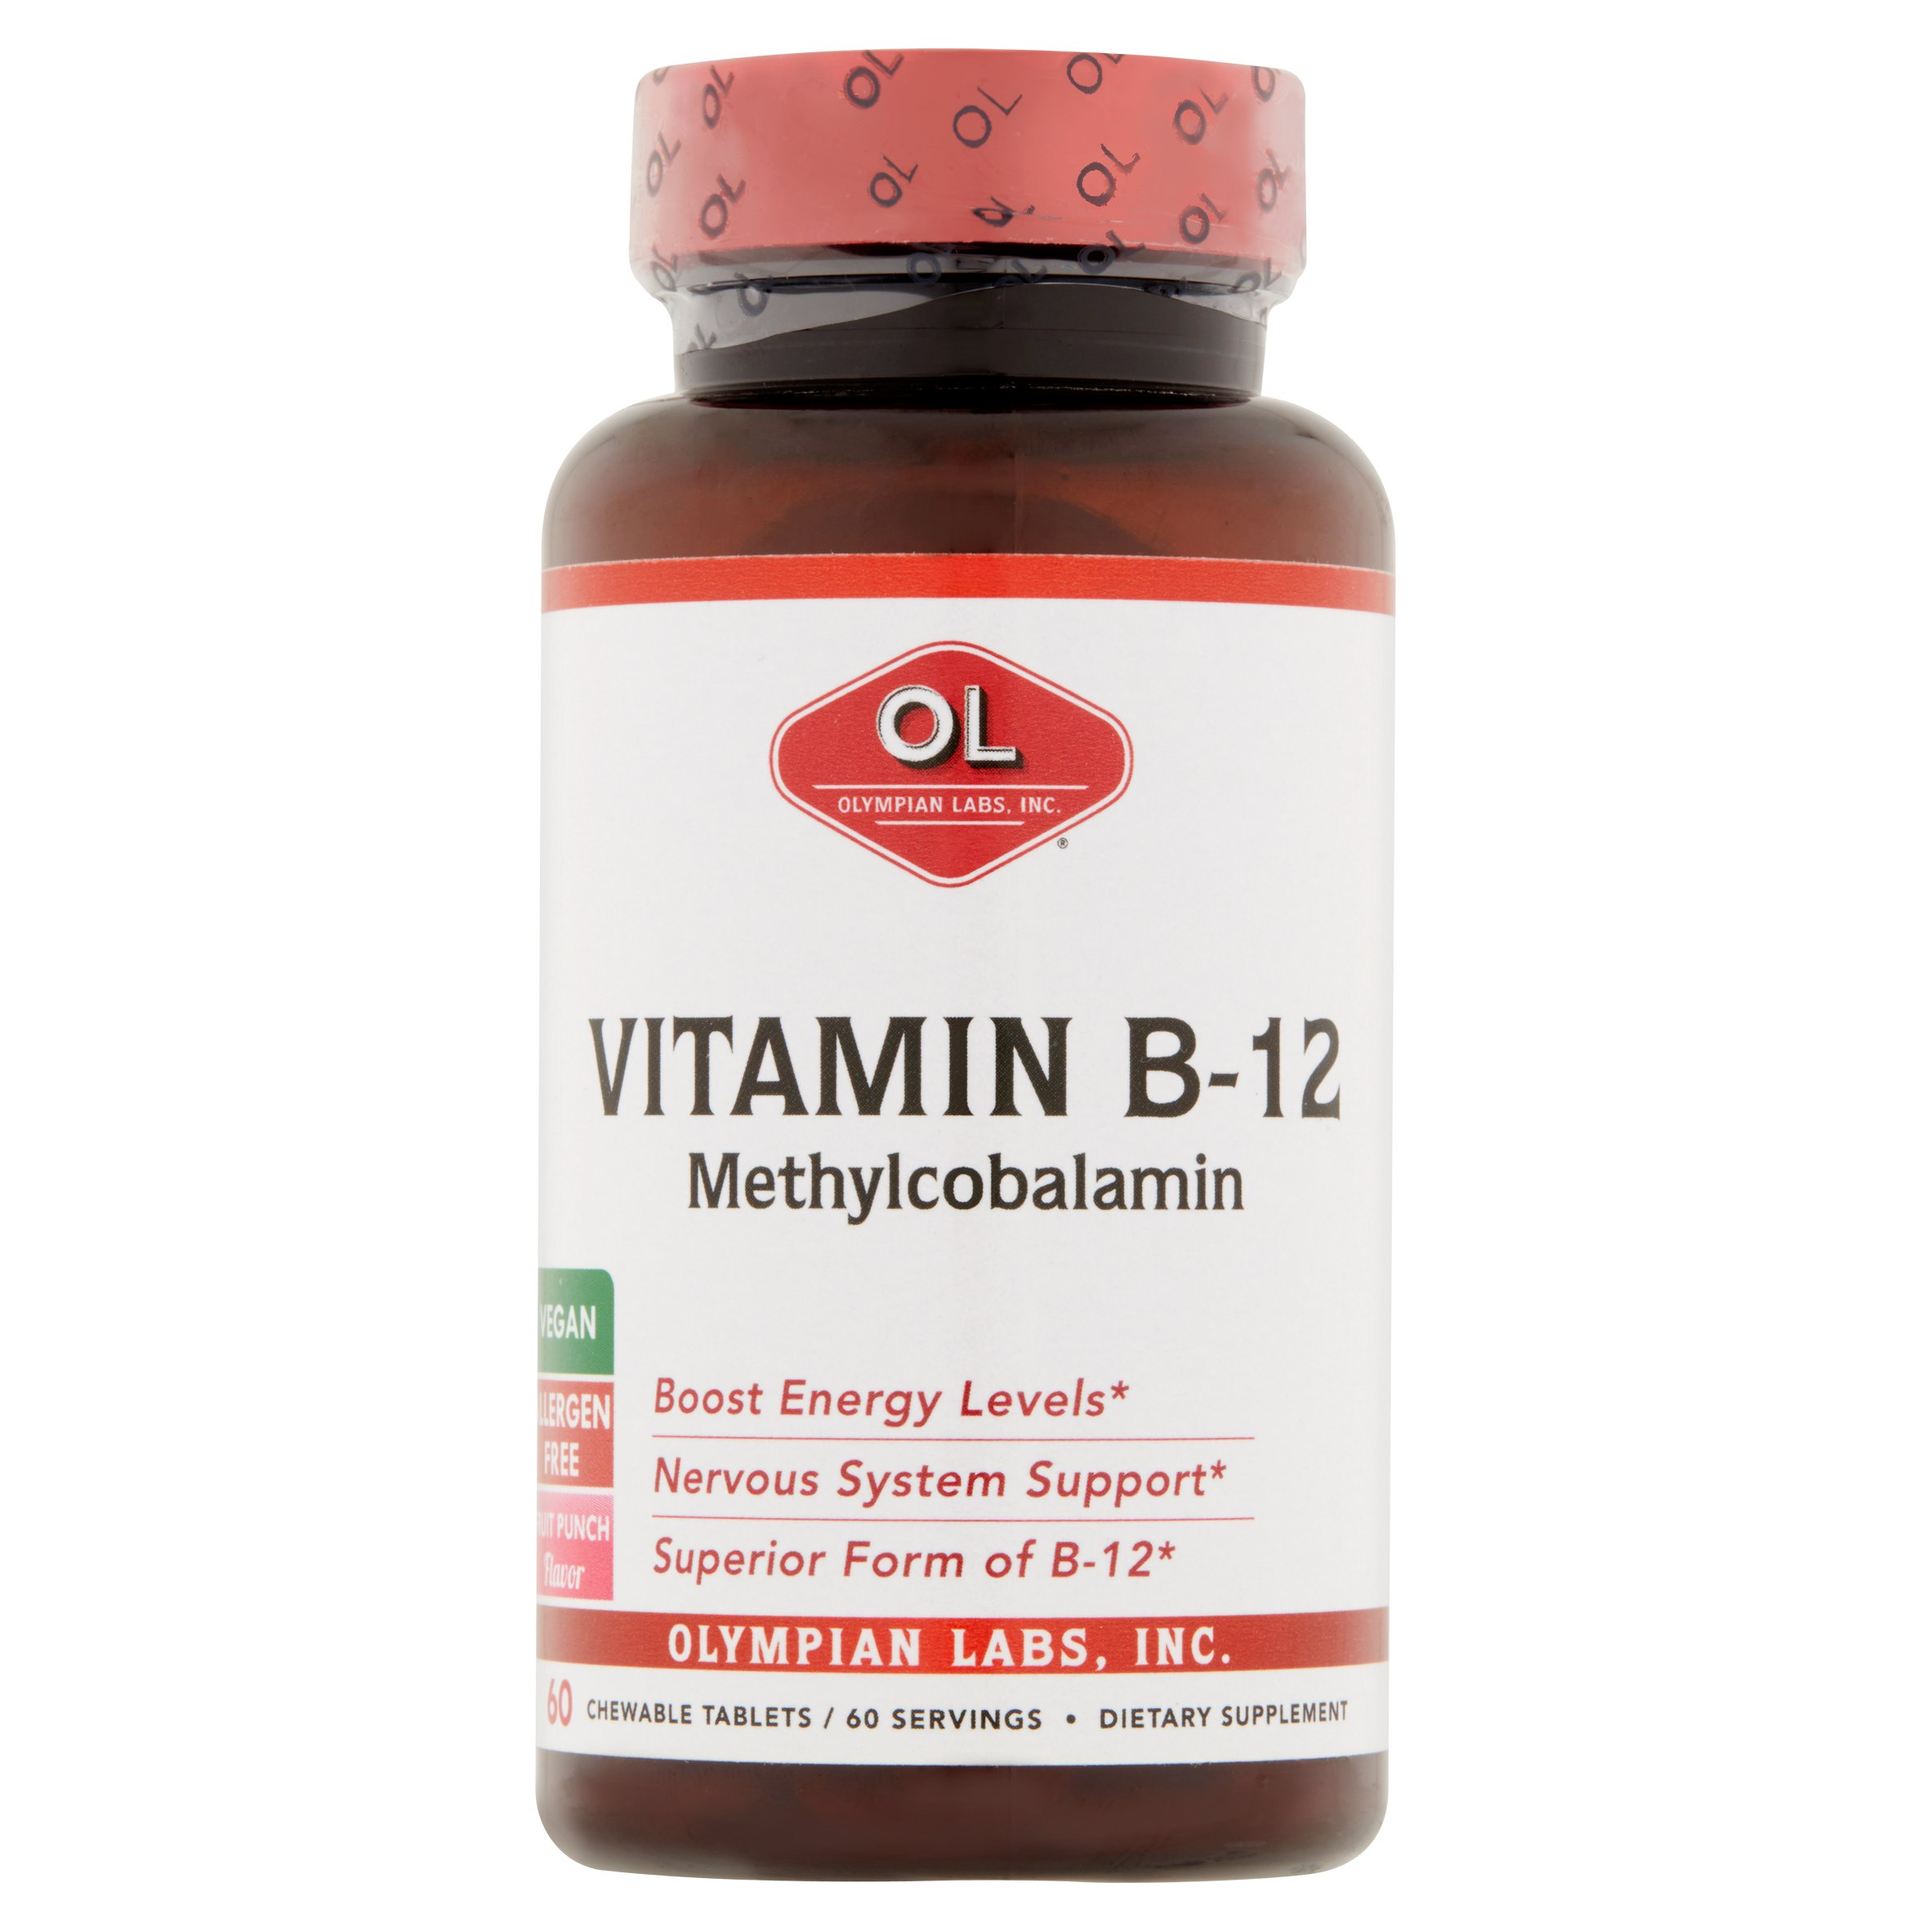 Olympian Labs Vitamin B-12 Methylcobalamin Chewable Tablets, 60 count